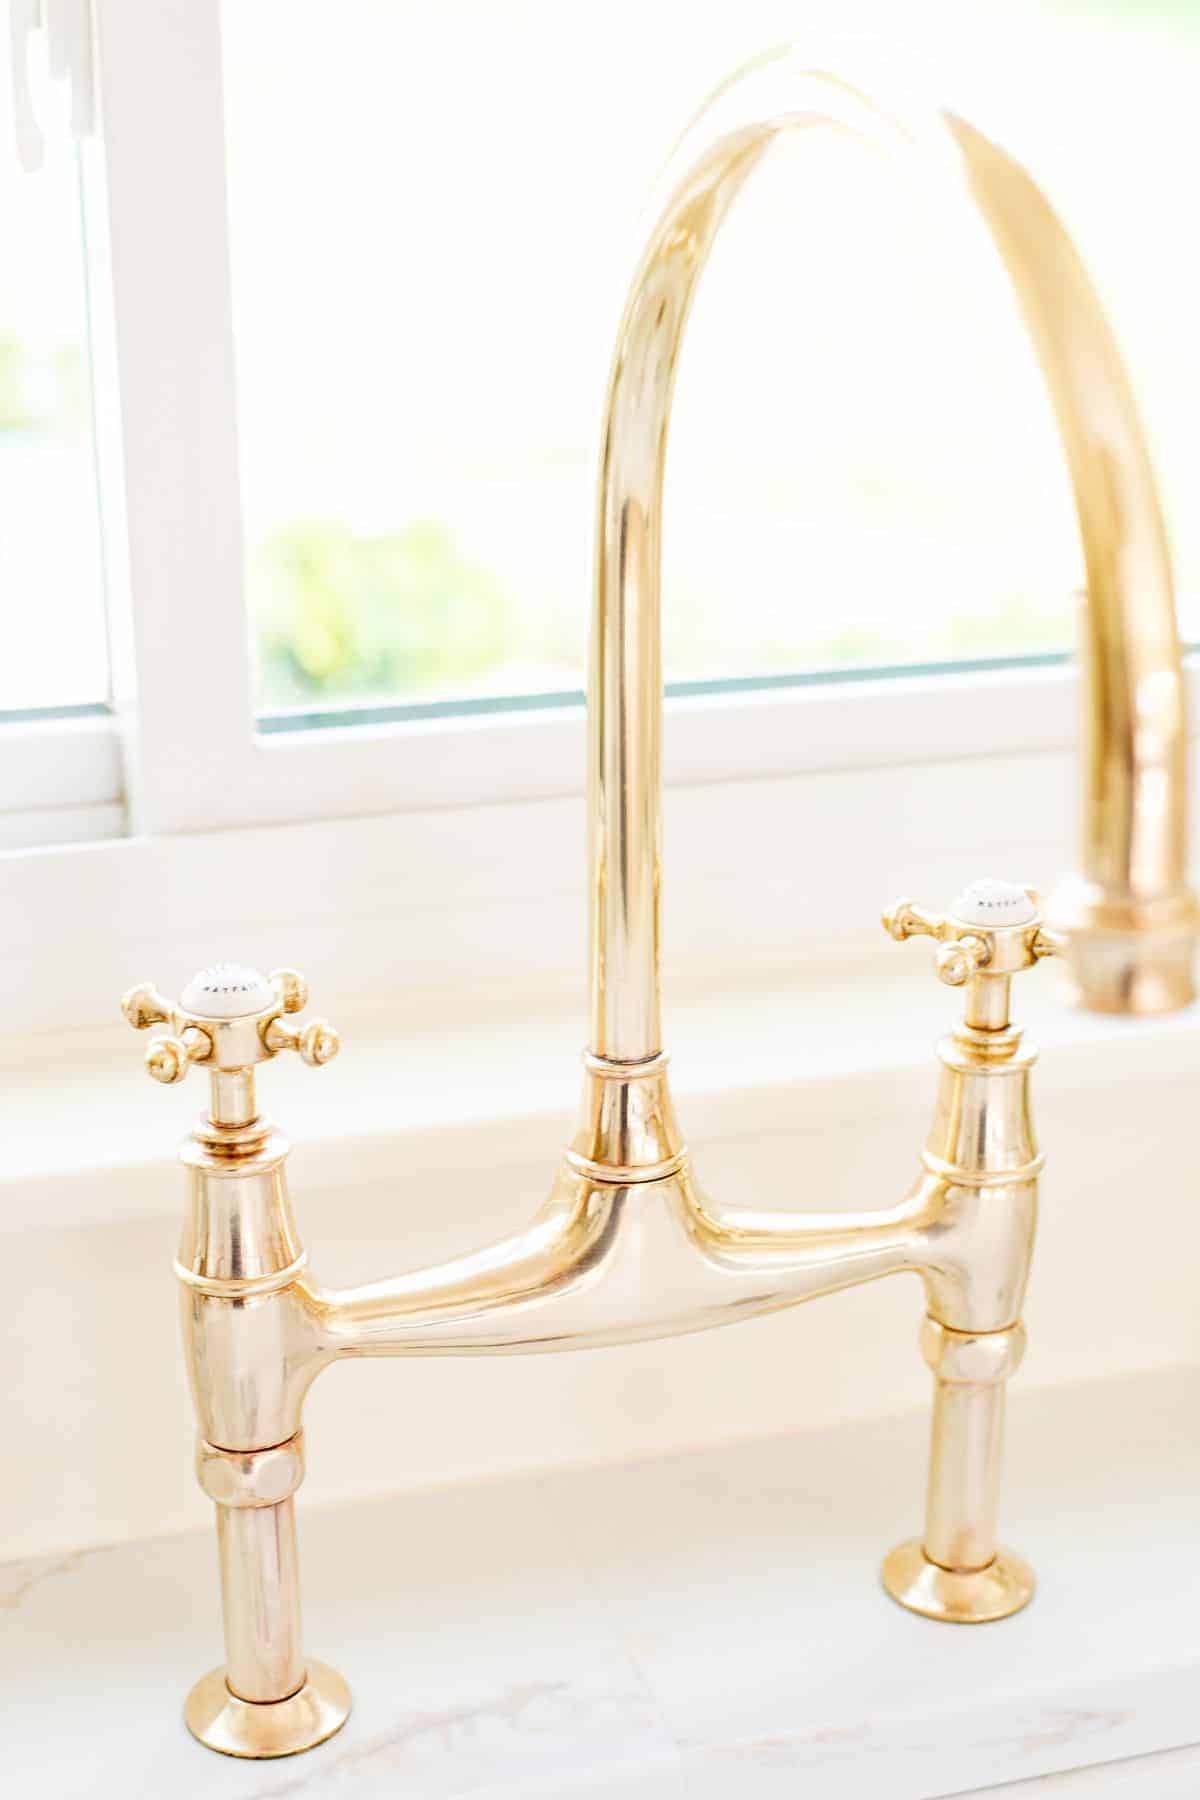 A brass bridge faucet that is shiny from brass polish.